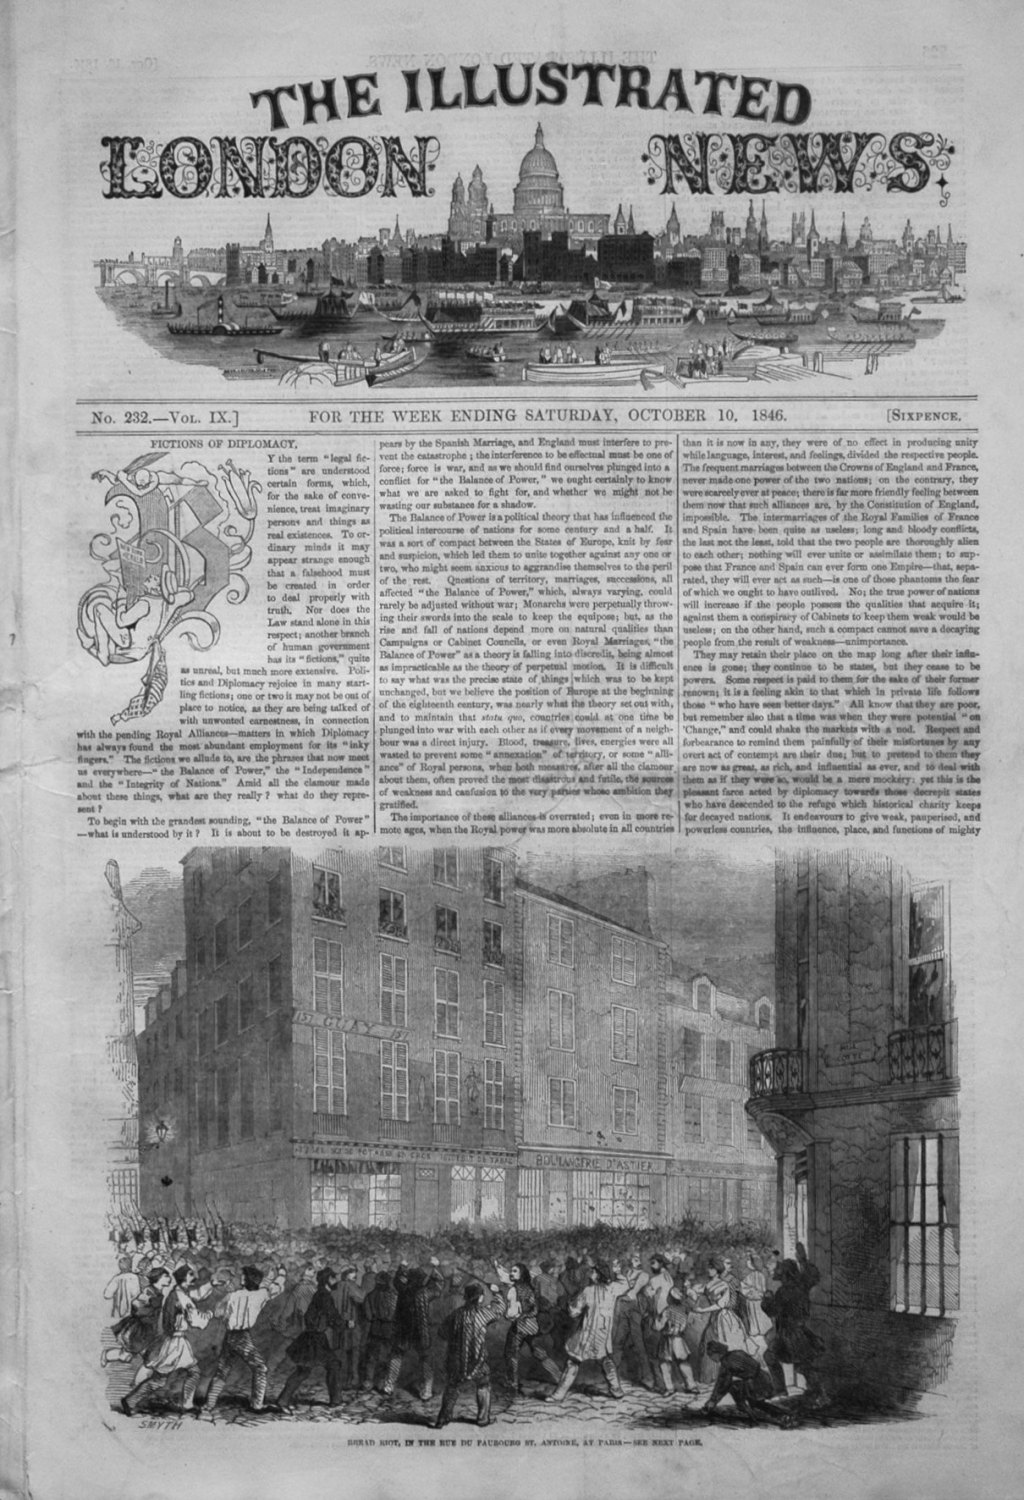 Illustrated London News October 10th 1846.